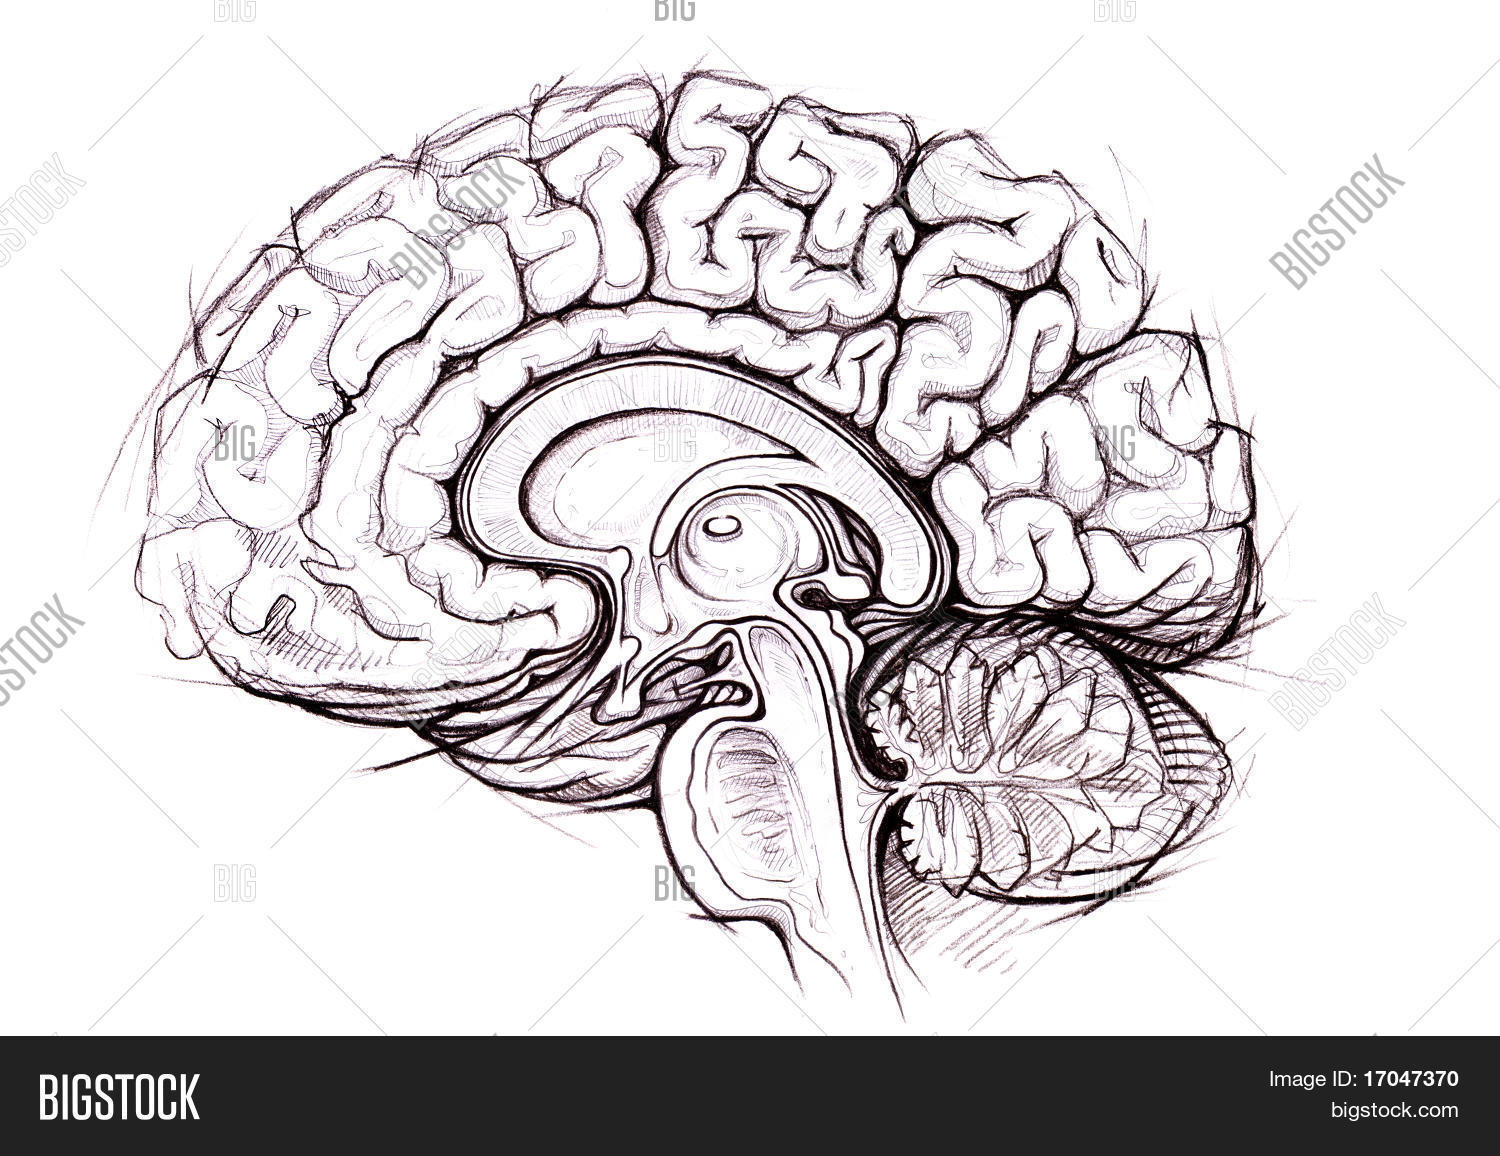 Human Brain Anatomy Image Photo Free Trial Bigstock